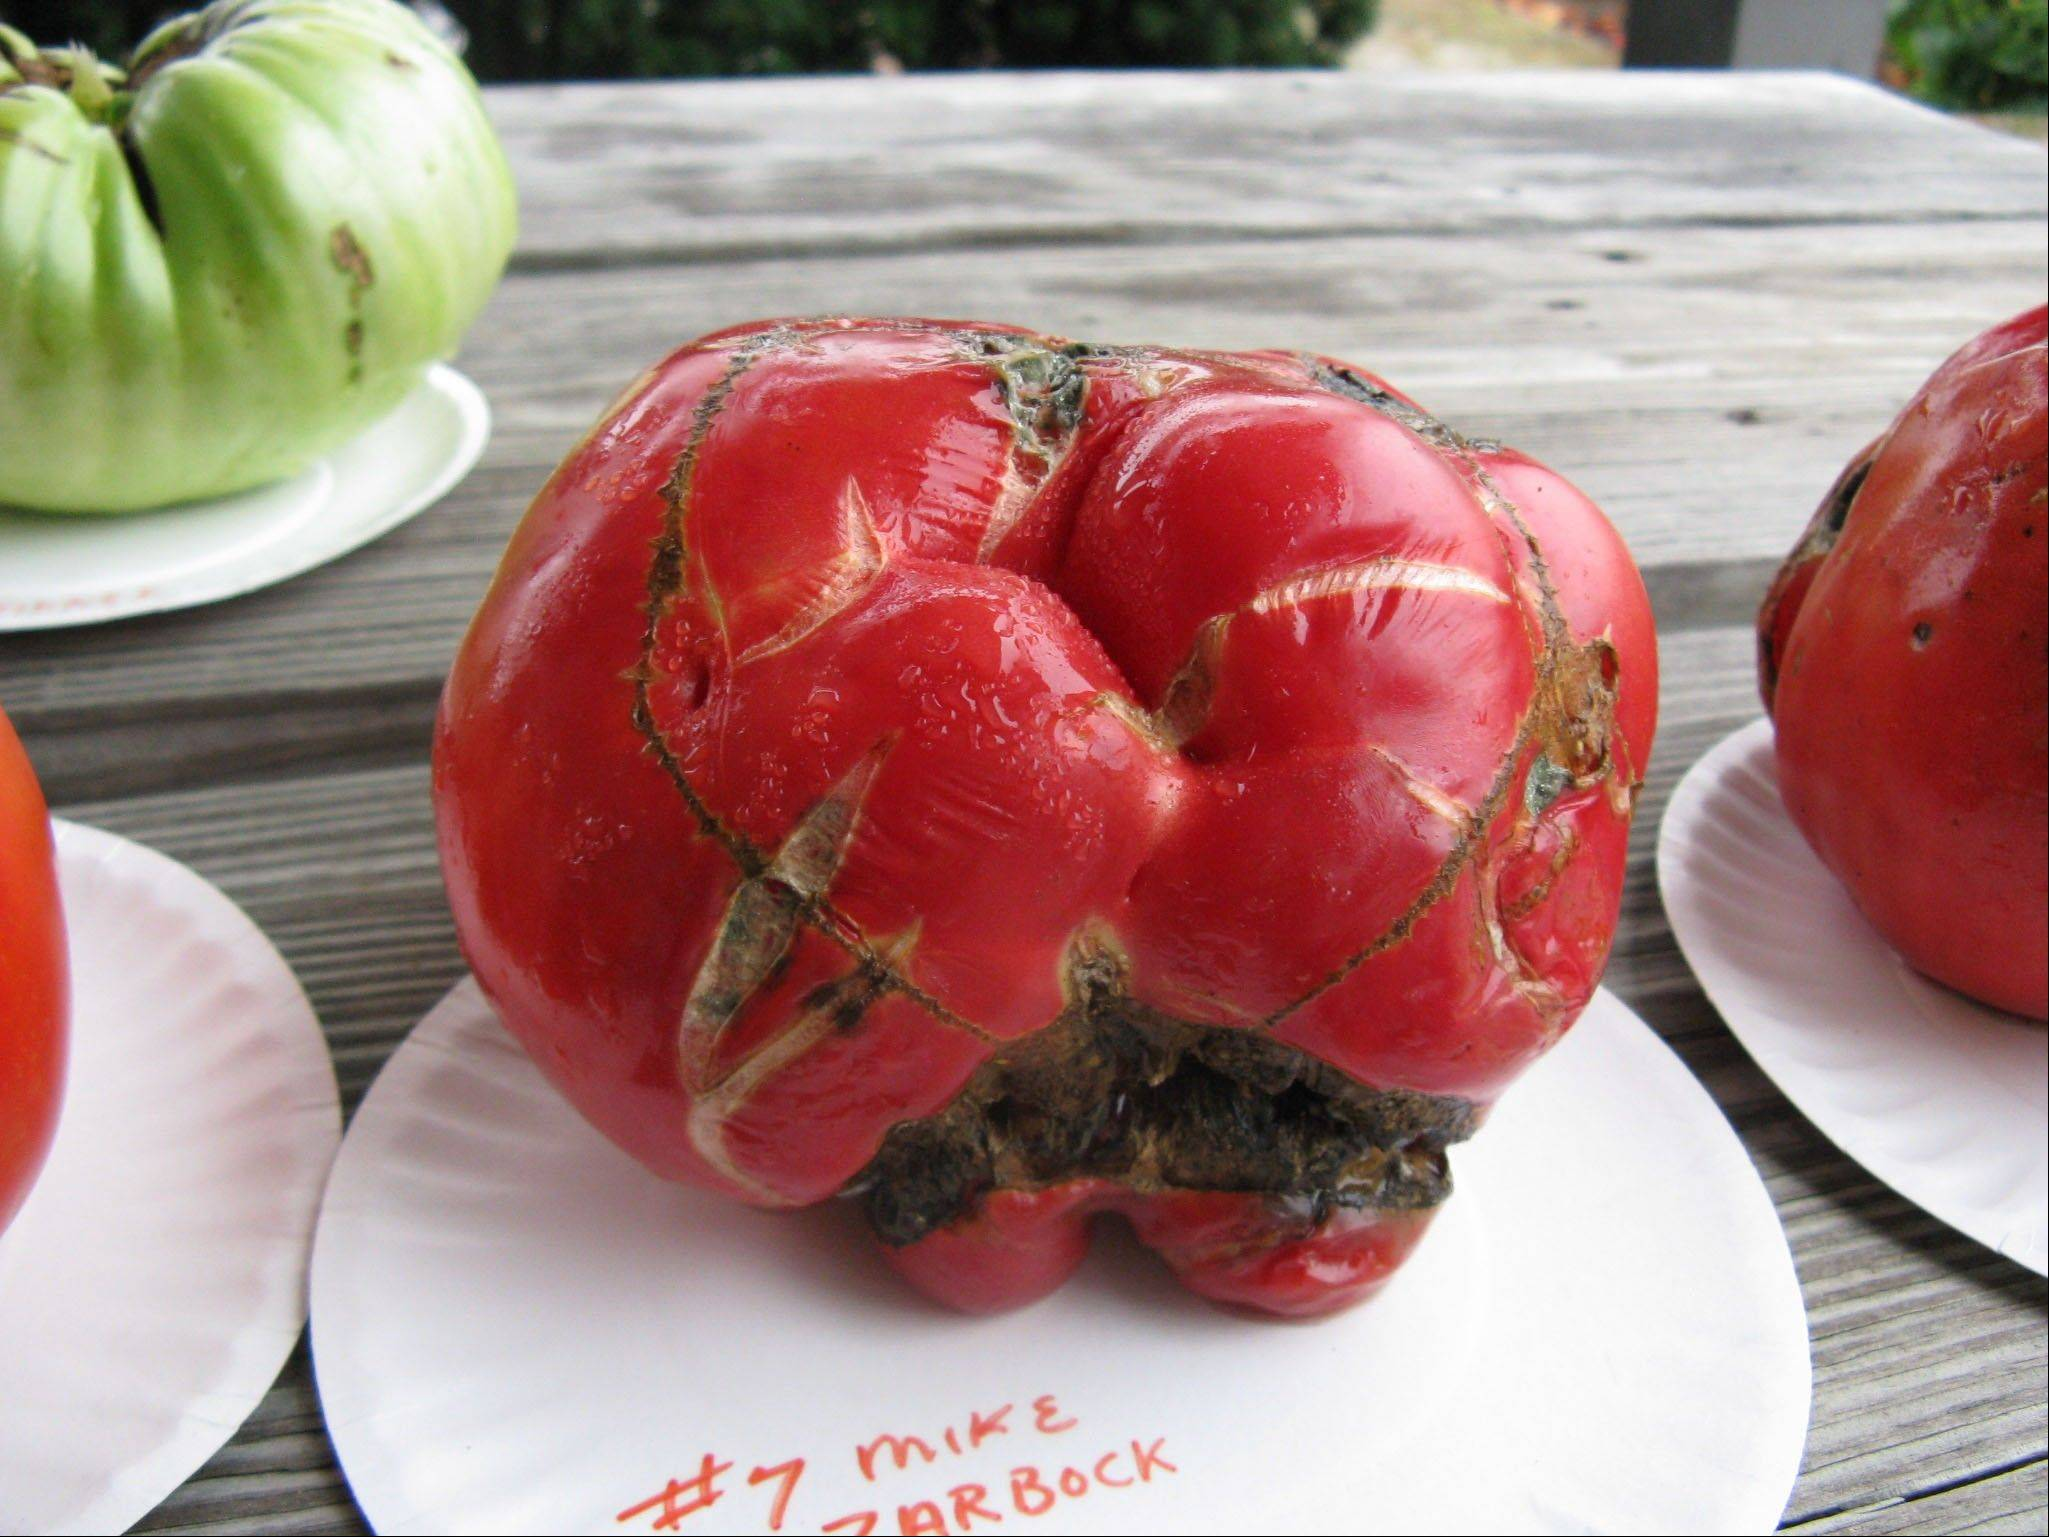 """Frankenmato"" was one of the ugliest tomatos in a recent contest for the largest tomato, organized by the Dundee Township Visitor's Center. While it didn't win any prizes, an organizer joked that judges should hand out awards for the ugliest tomato."